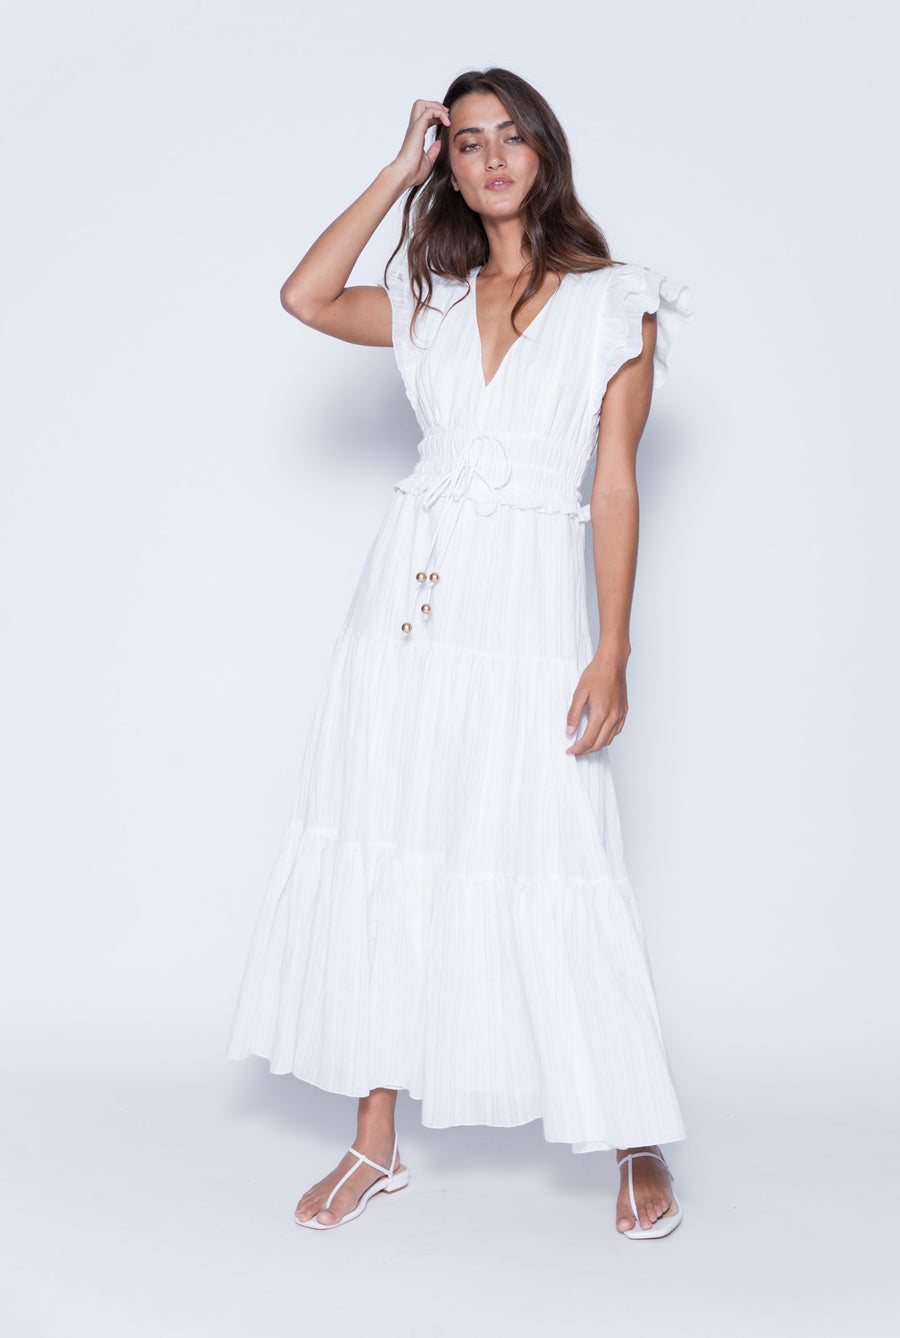 Karina Grimaldi Karla Maxi Dress